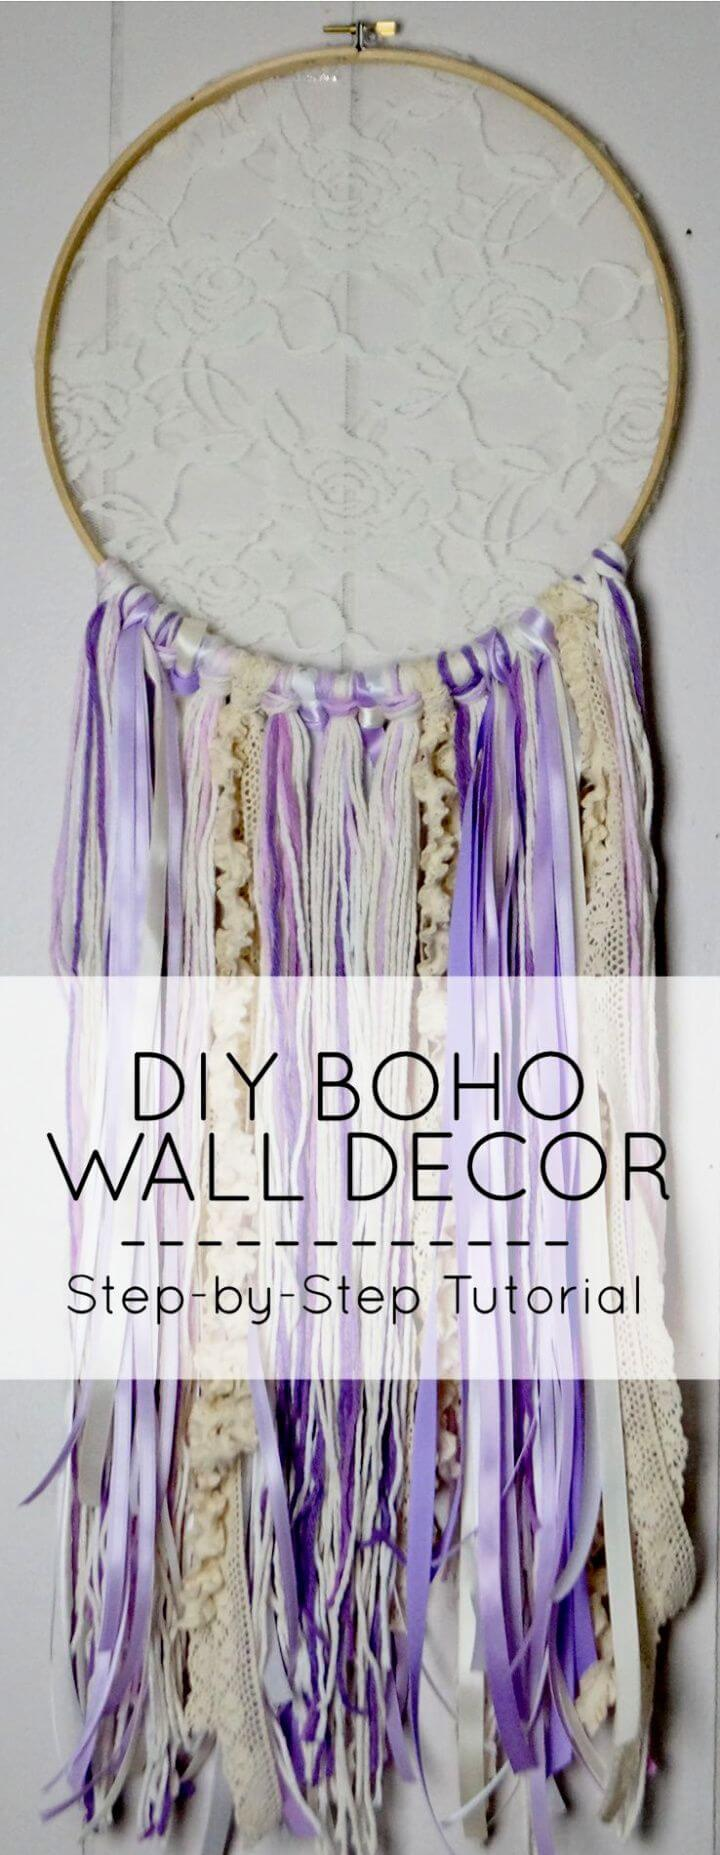 DIY Boho Dreamcatcher Wall Decor for Your Home